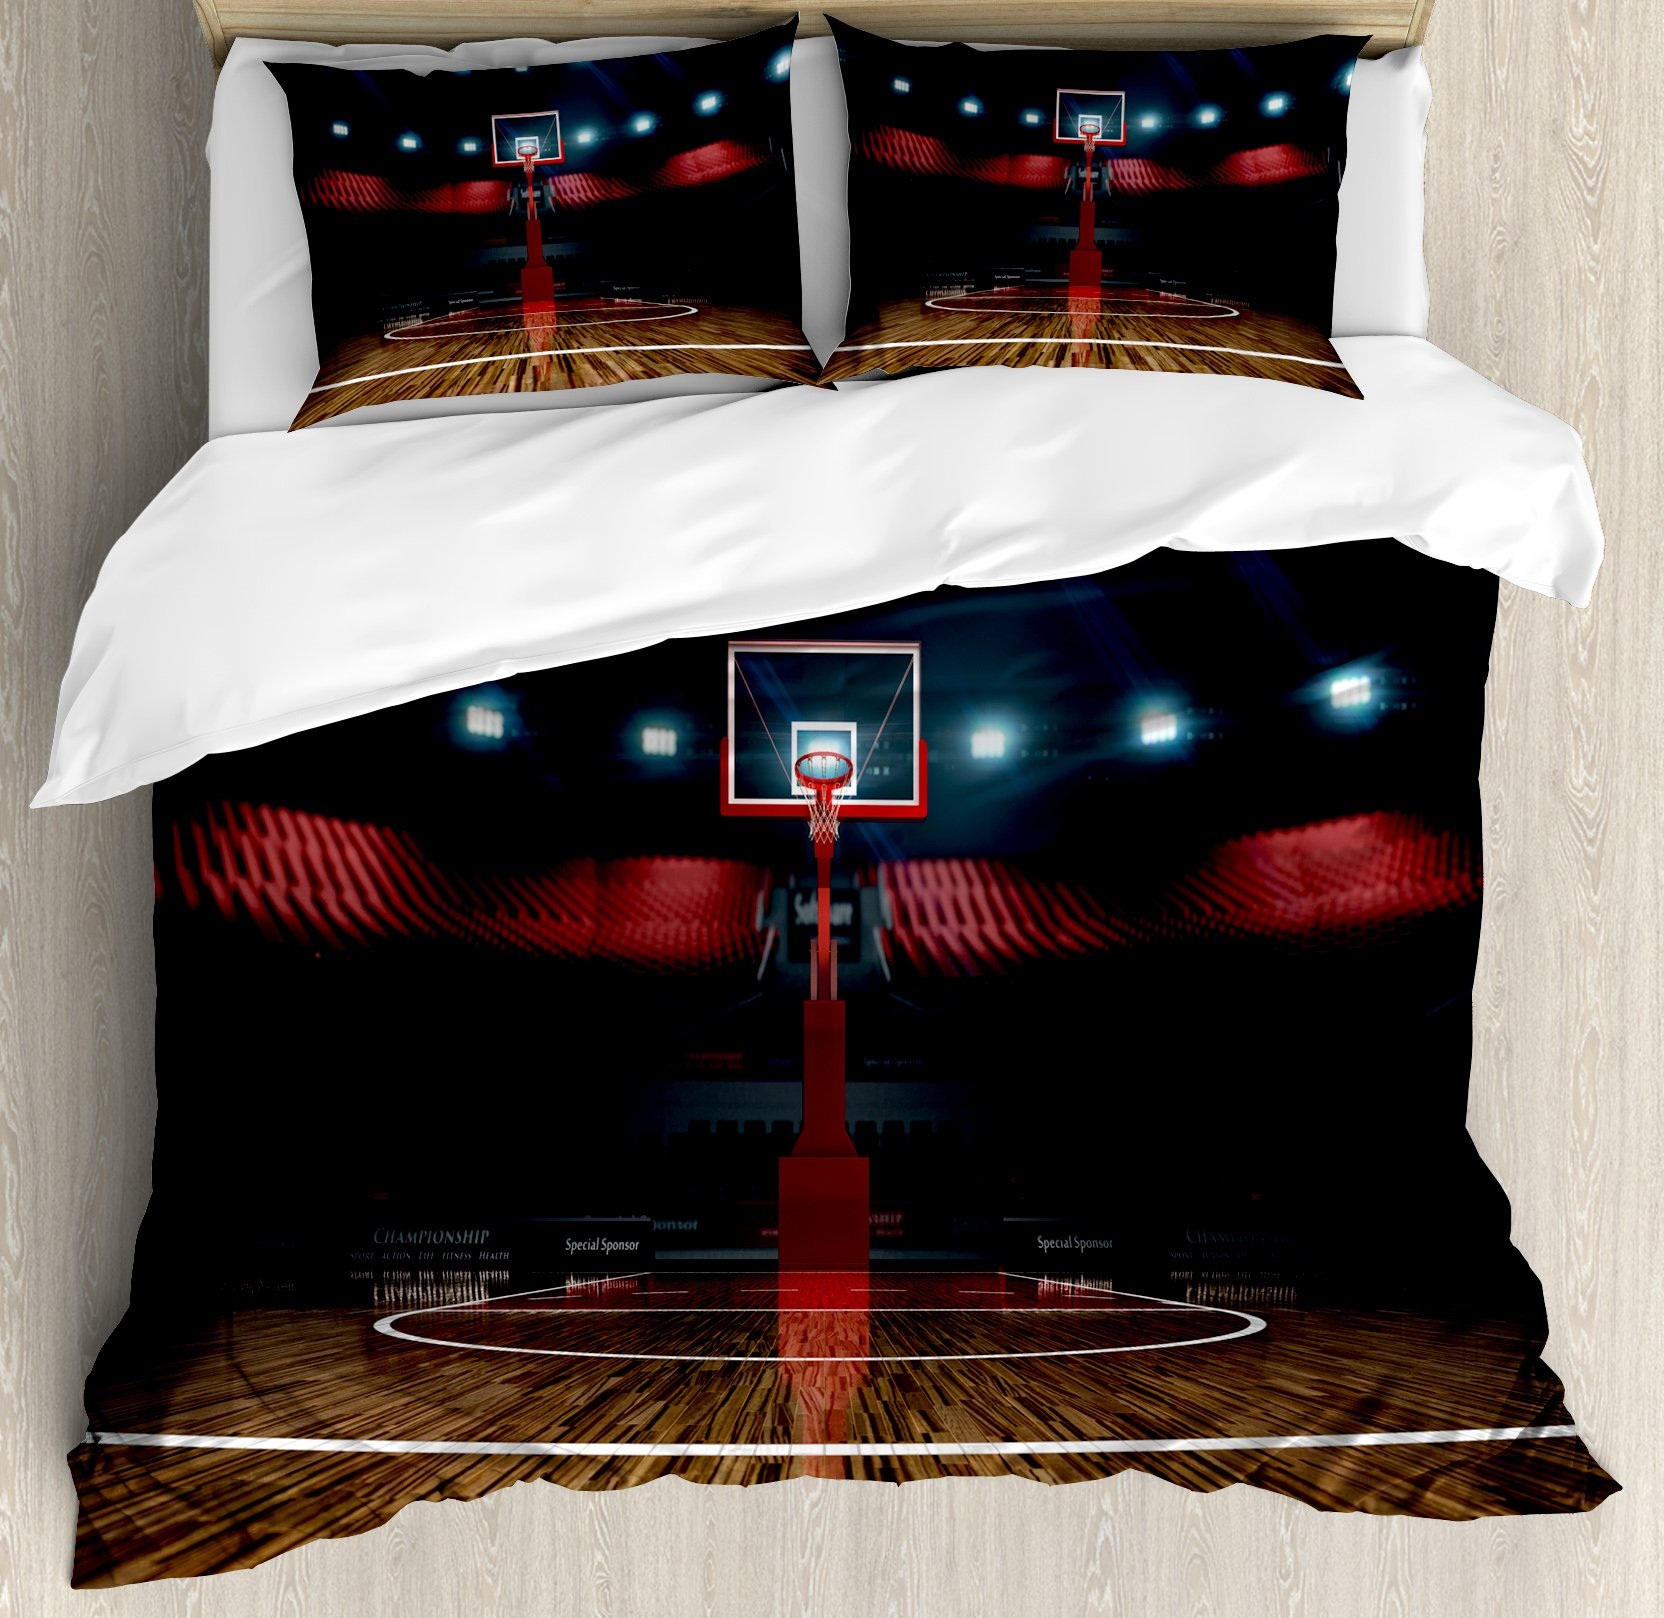 Teen Room Decor Duvet Cover Set King Size by Ambesonne, Professional Basketball Arena Stadium before Game Championship Sports Image, Decorative 3 Piece Bedding Set with 2 Pillow Shams, Multicolor